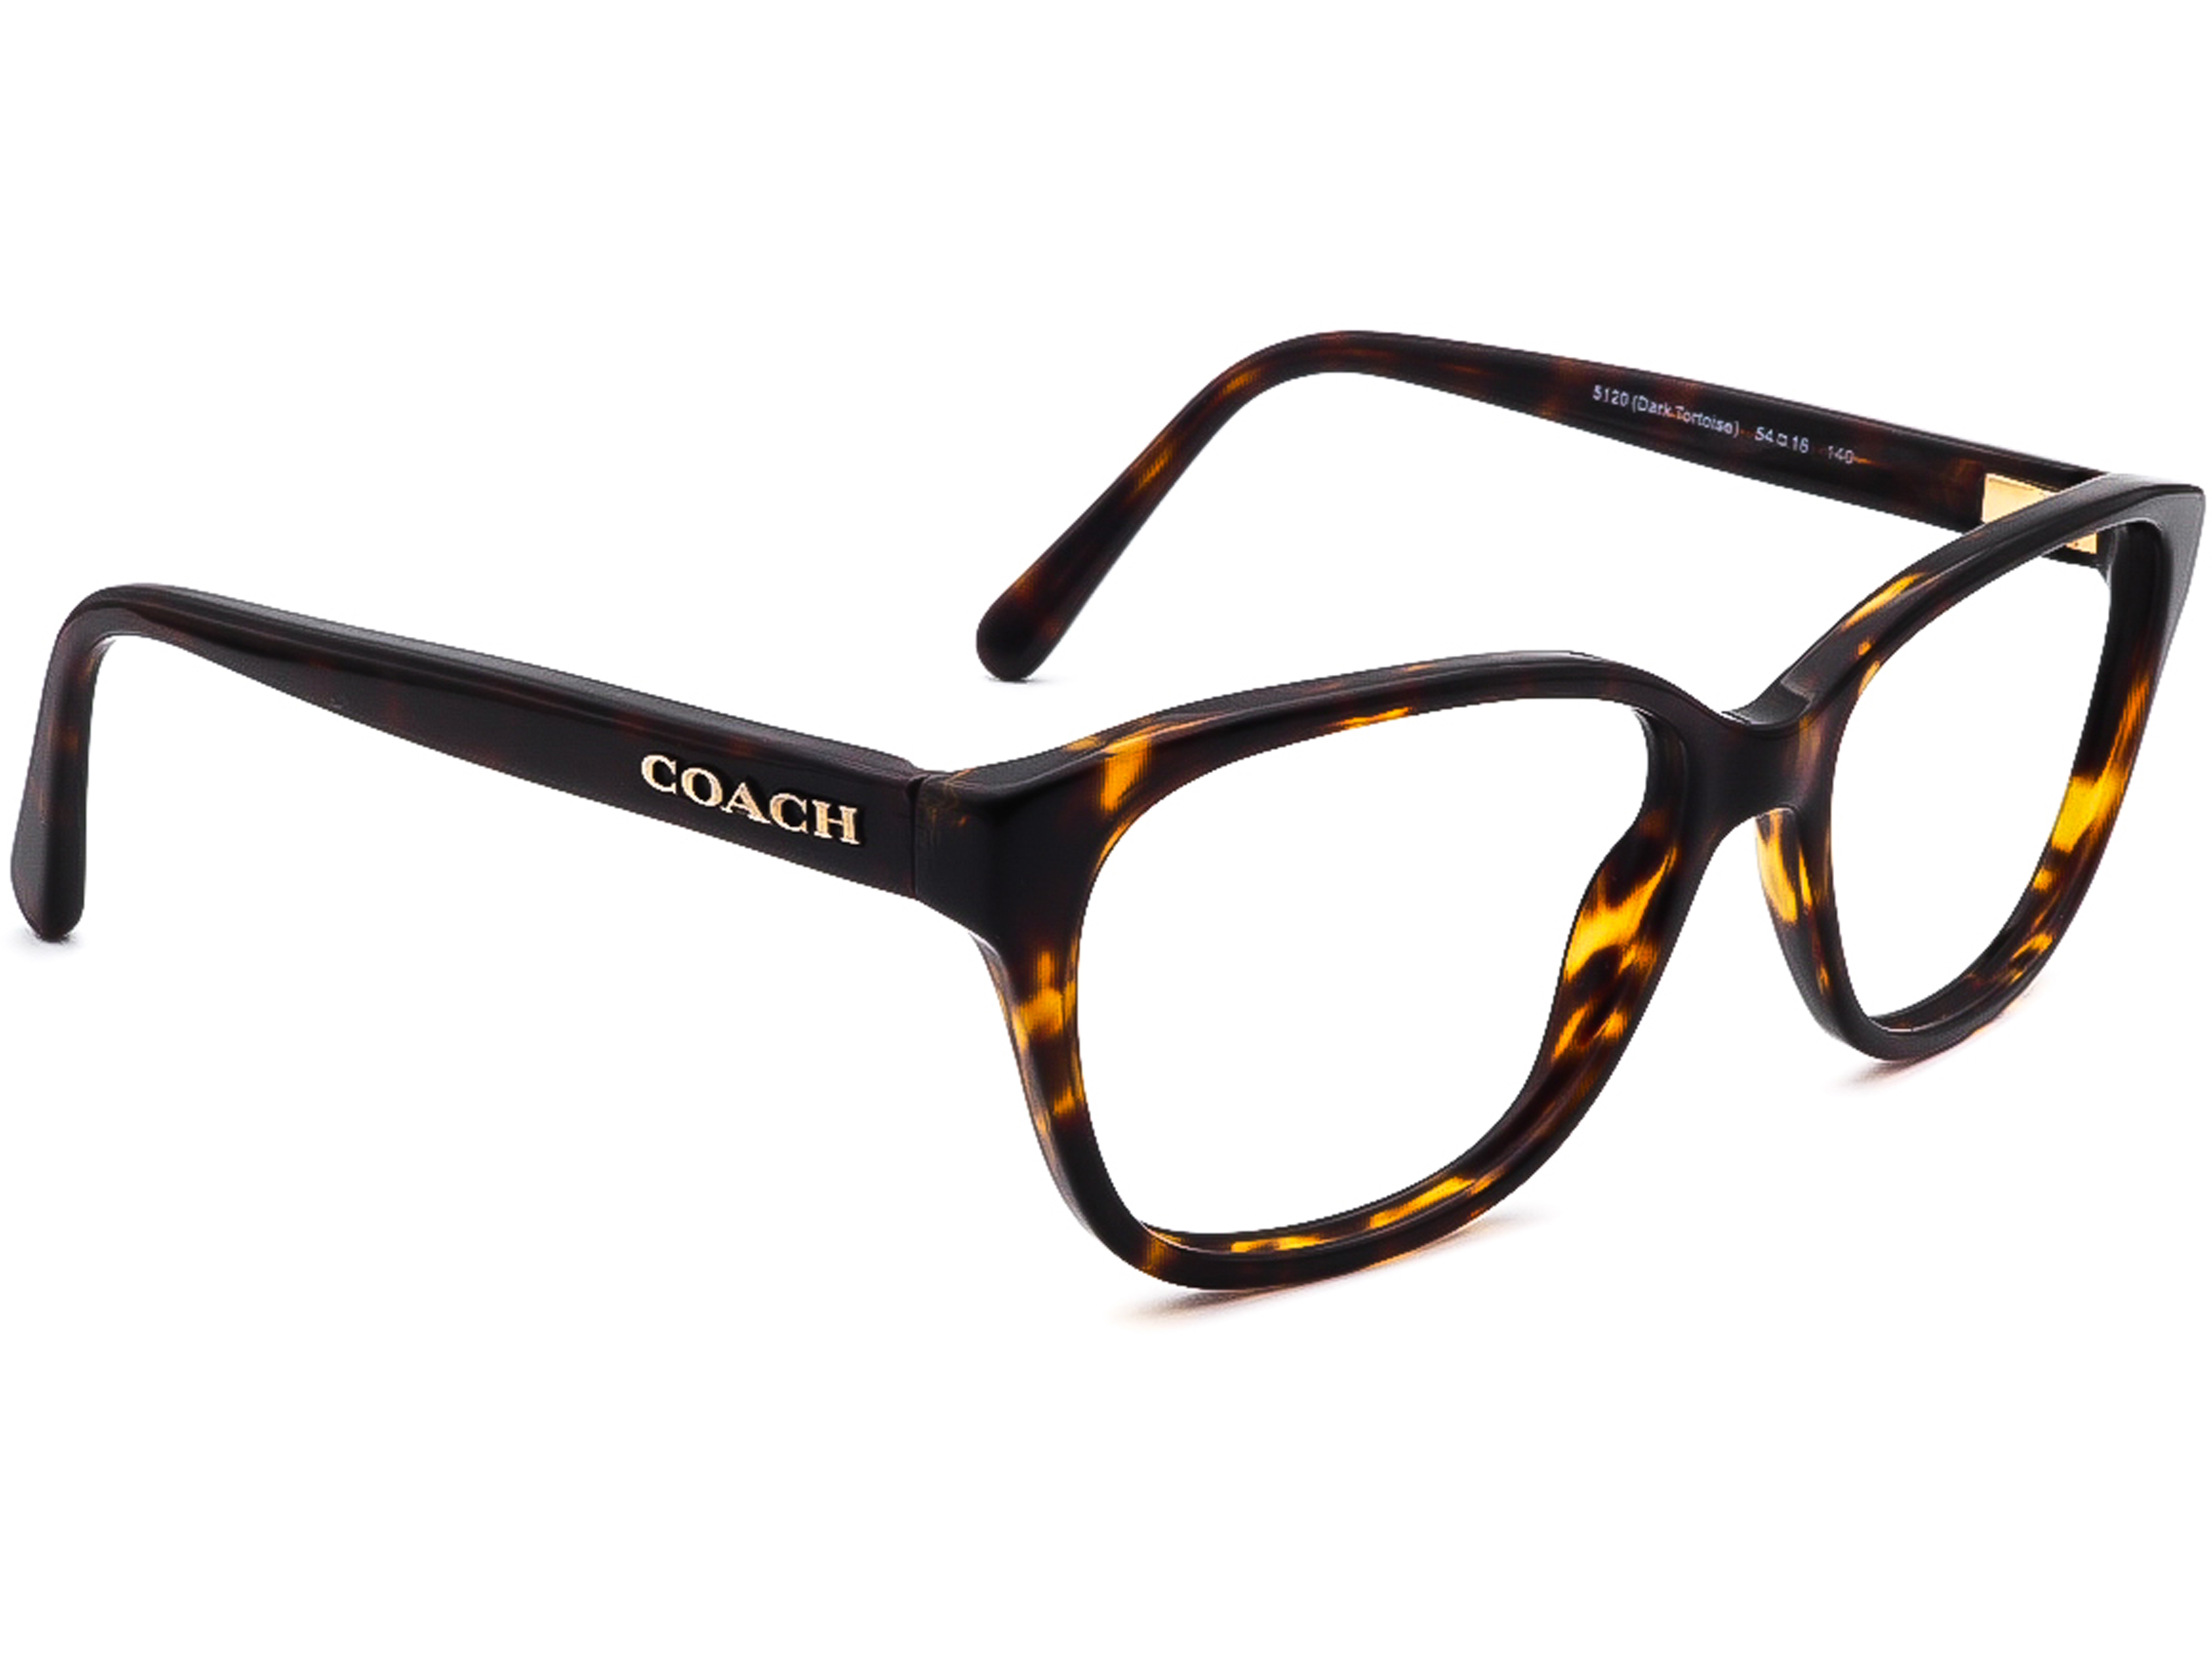 Coach HC 6103 5120 Dark Sunglasses Frame Only